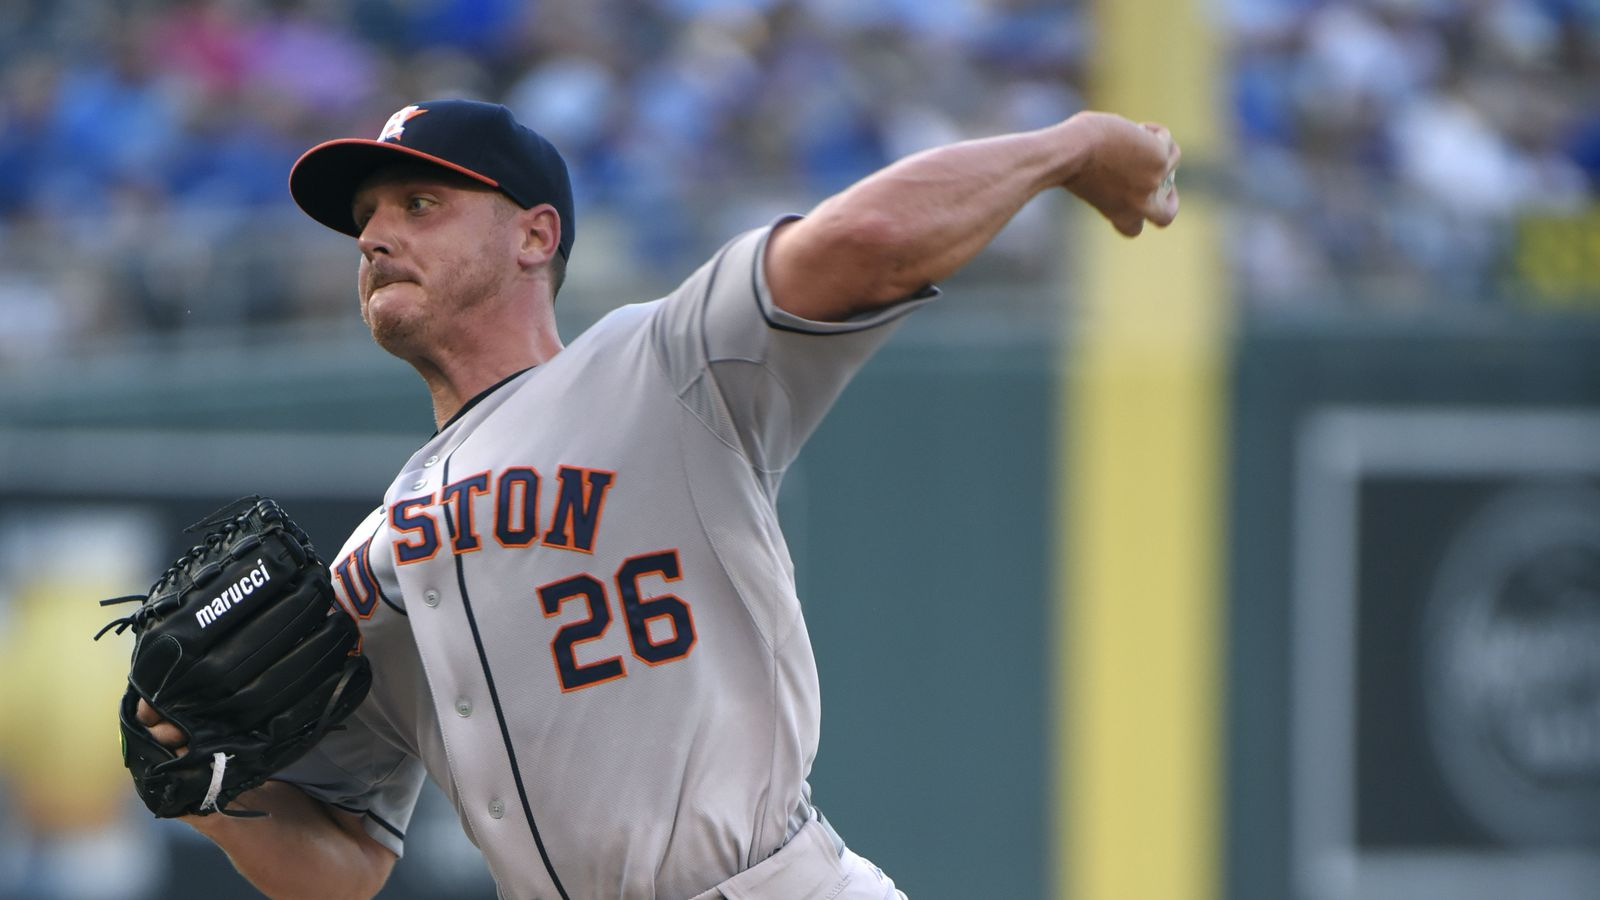 Syracuses andrew white has learned being a one dimensional player doesnt work syracuse com - Scott Kazmir Years Removed From A Major Injury That Robbed Him His Talents He Displayed 05 08 Kazmir Has Rebounded And Became An Ace As He Successfully